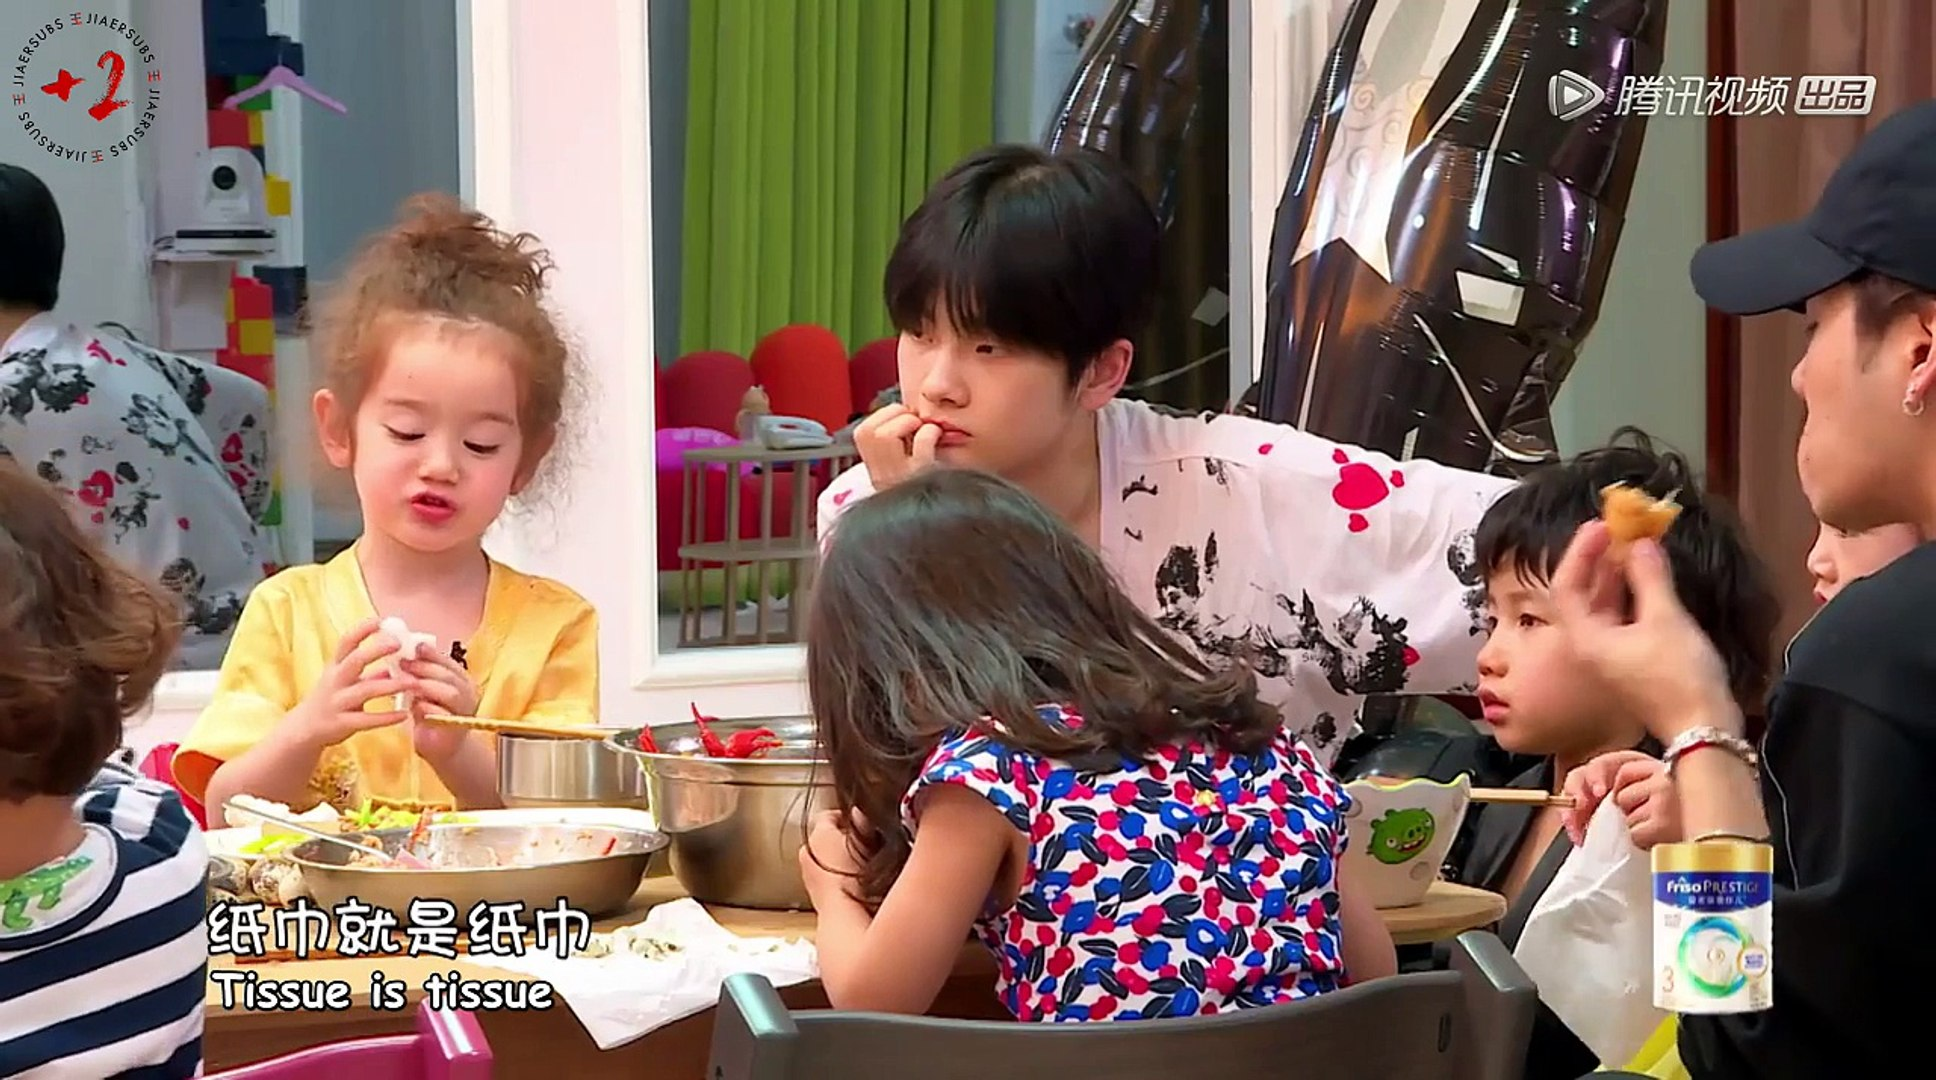 [EngSub] Let Go of My Baby S03 Ep10 Part 1/2 Jackson Wang